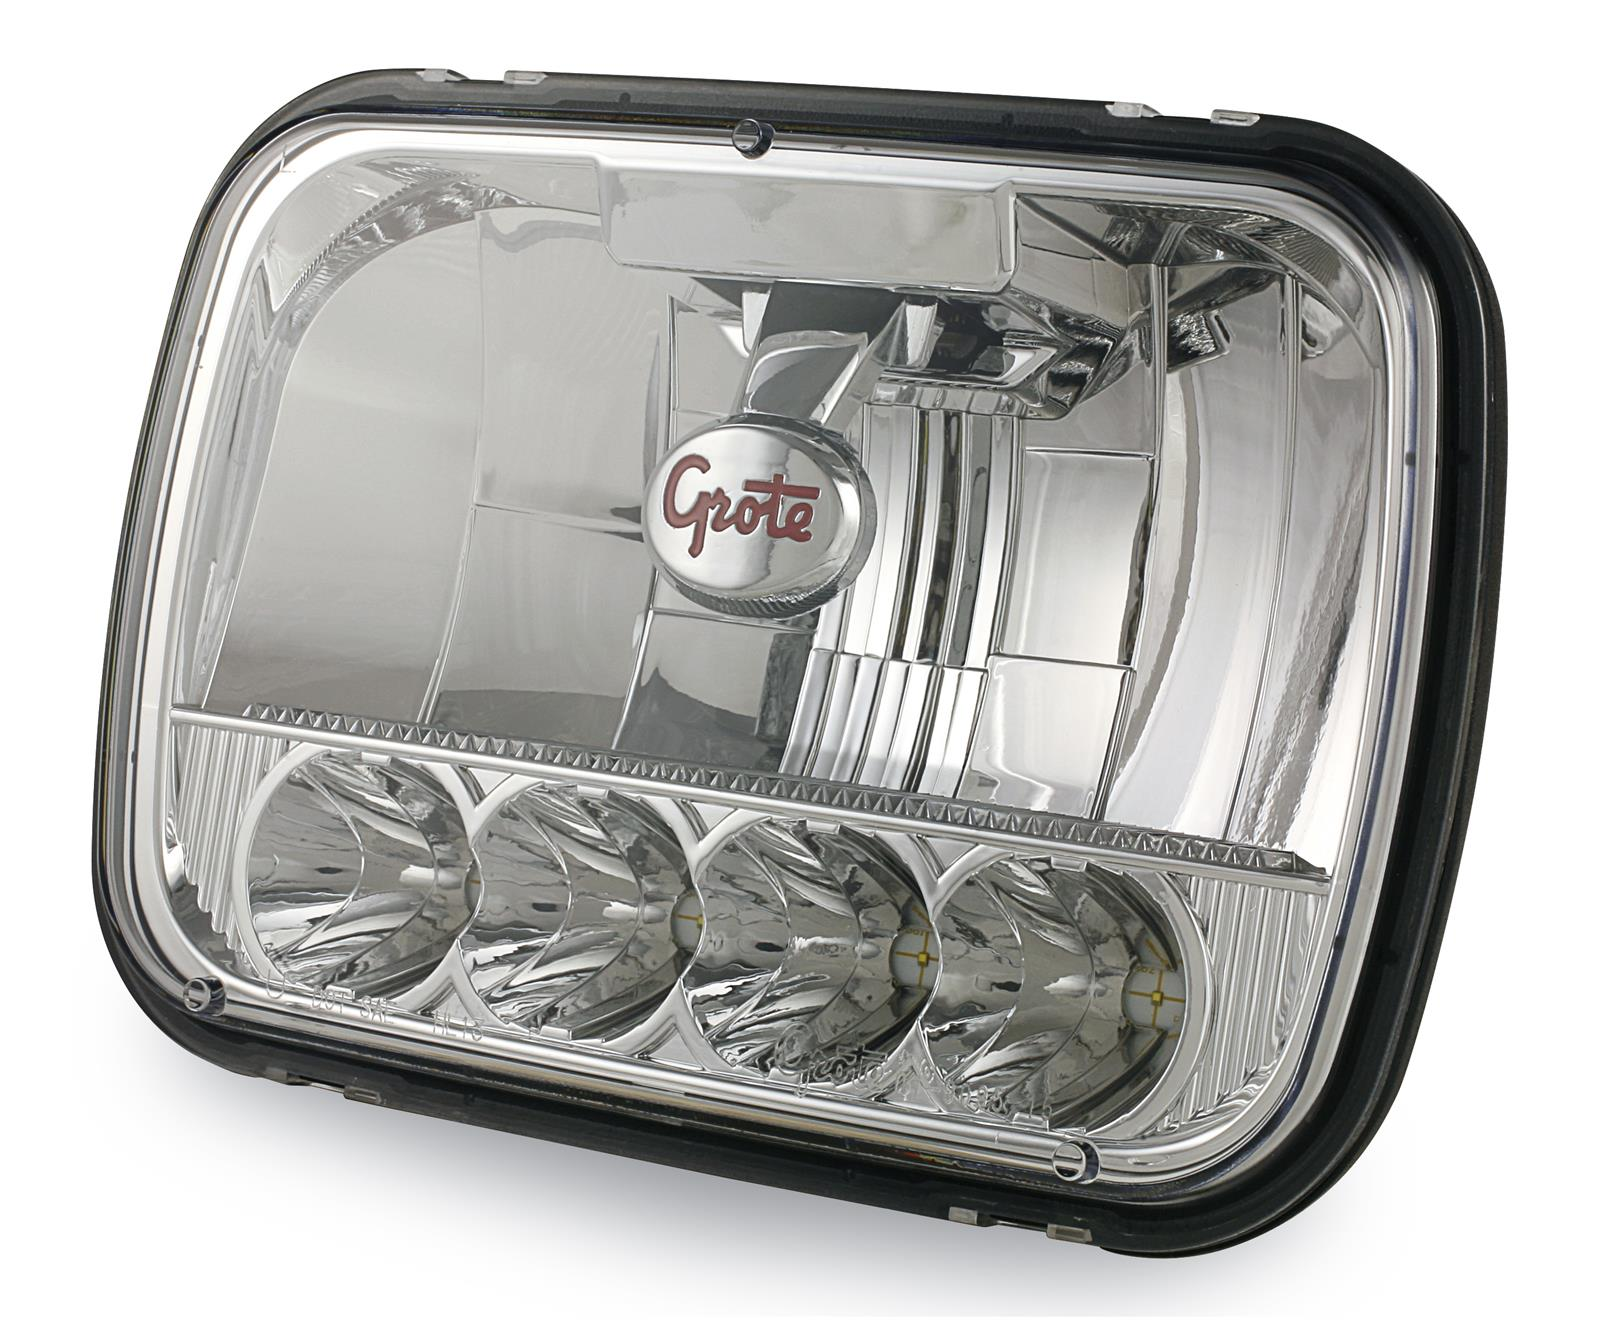 Led Headlights Sealed Beam Tractor : Grote industries sealed beam replacement led headlamp